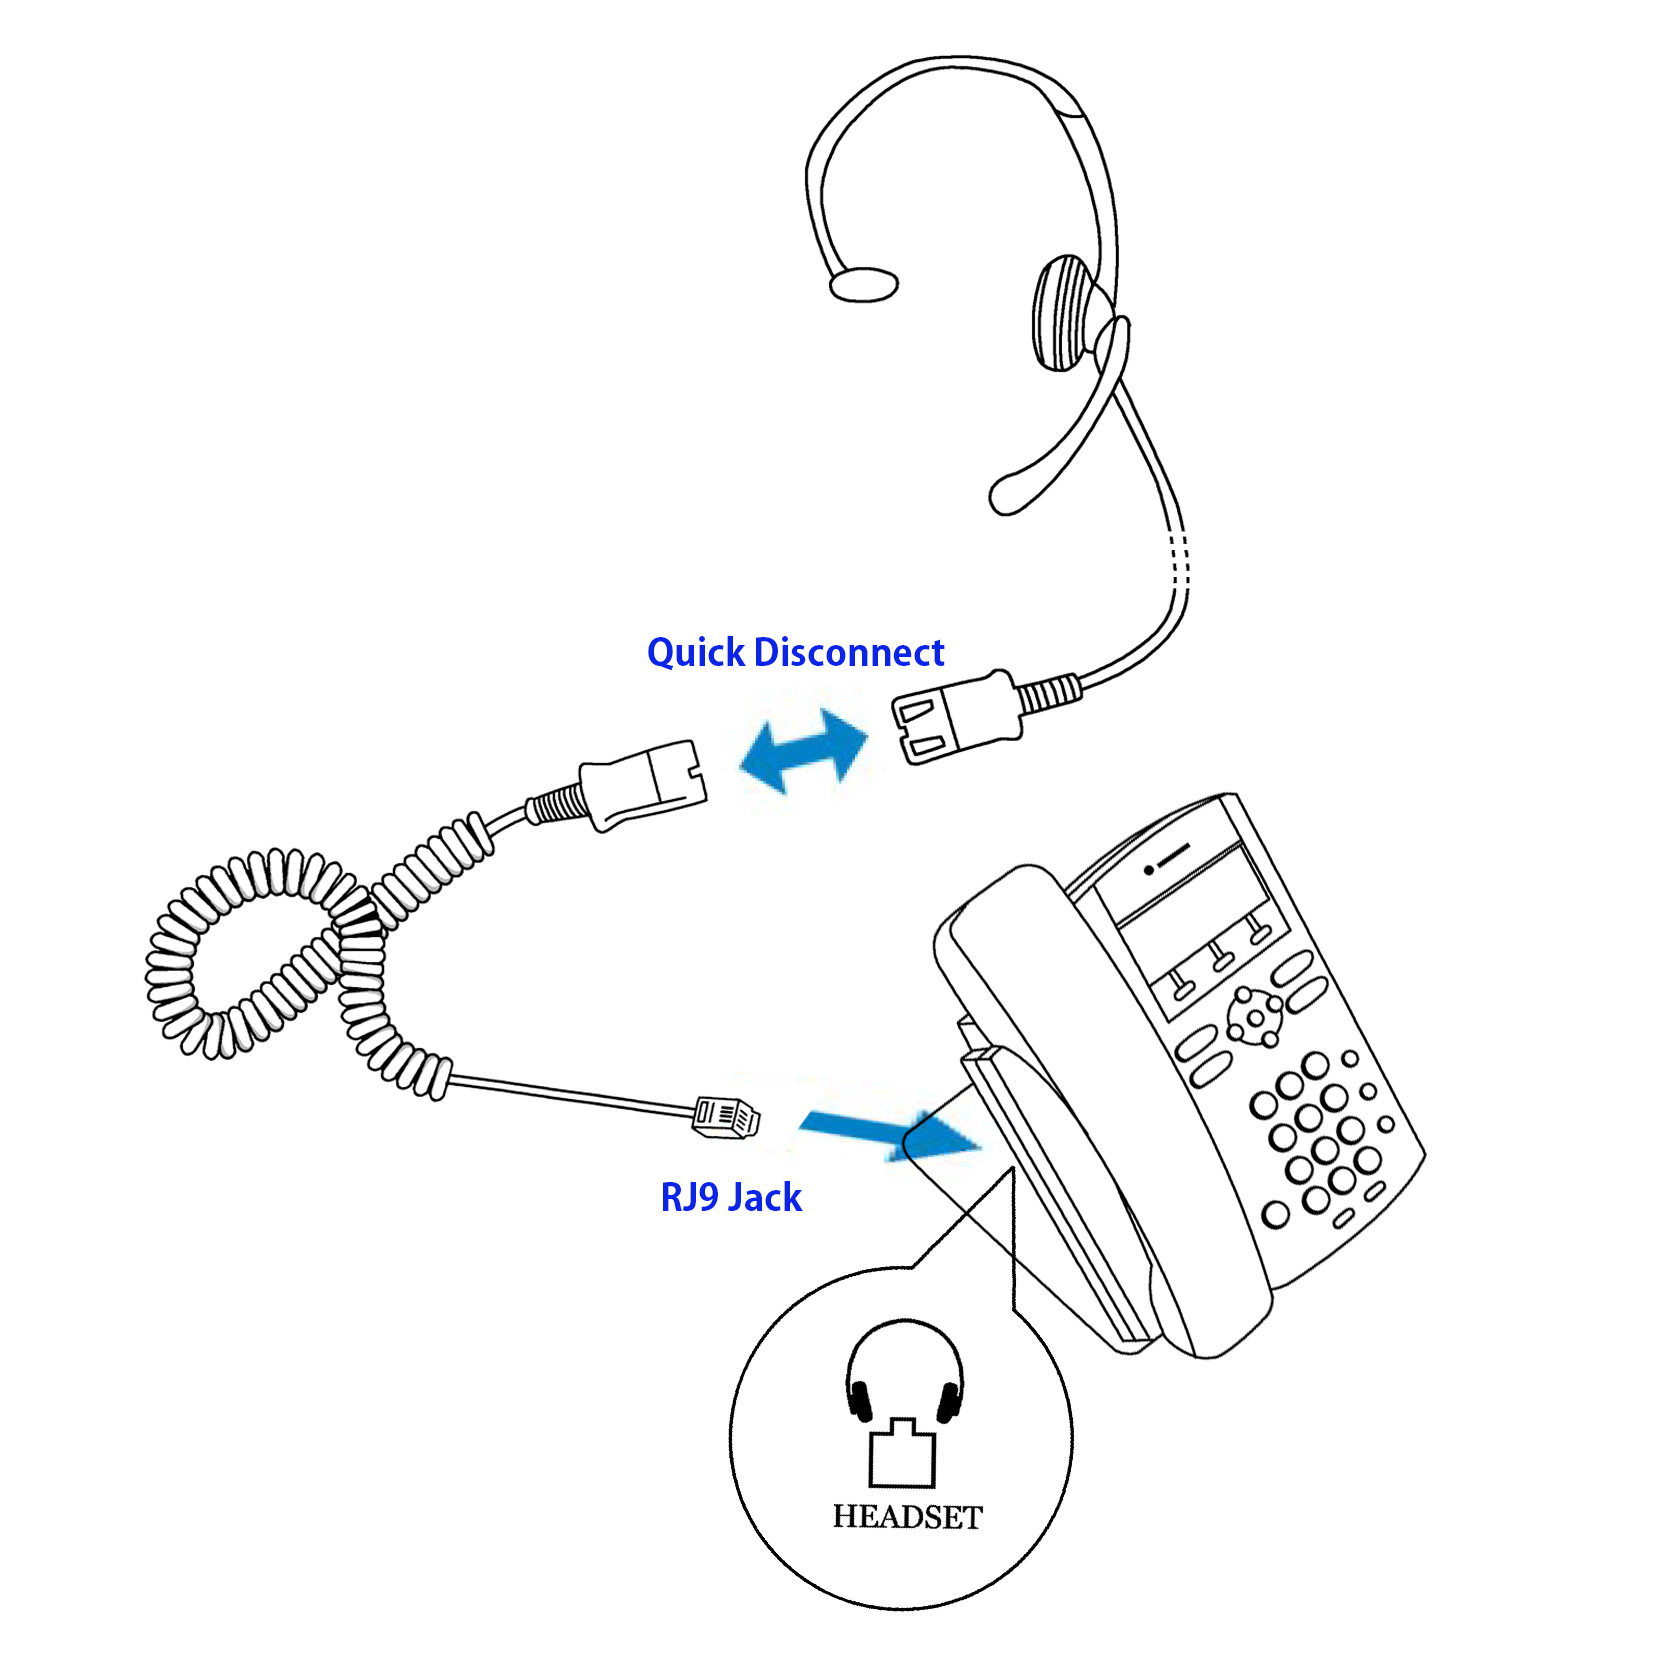 Cisco Headset Wiring Diagram Rj9 To 3 5mm Pinout Cisco